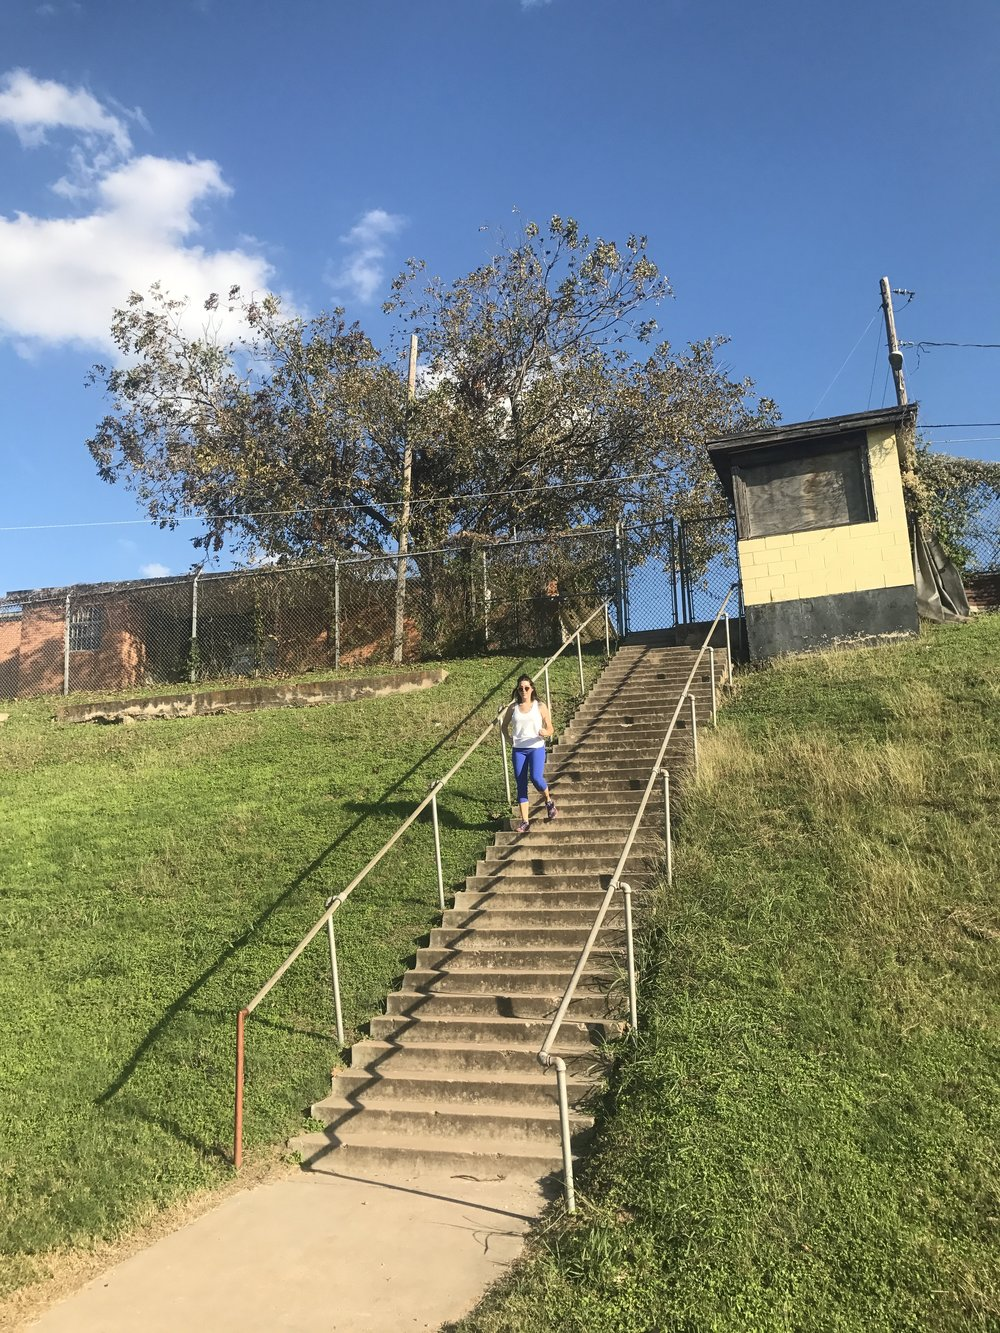 Clair gets those stairs!!